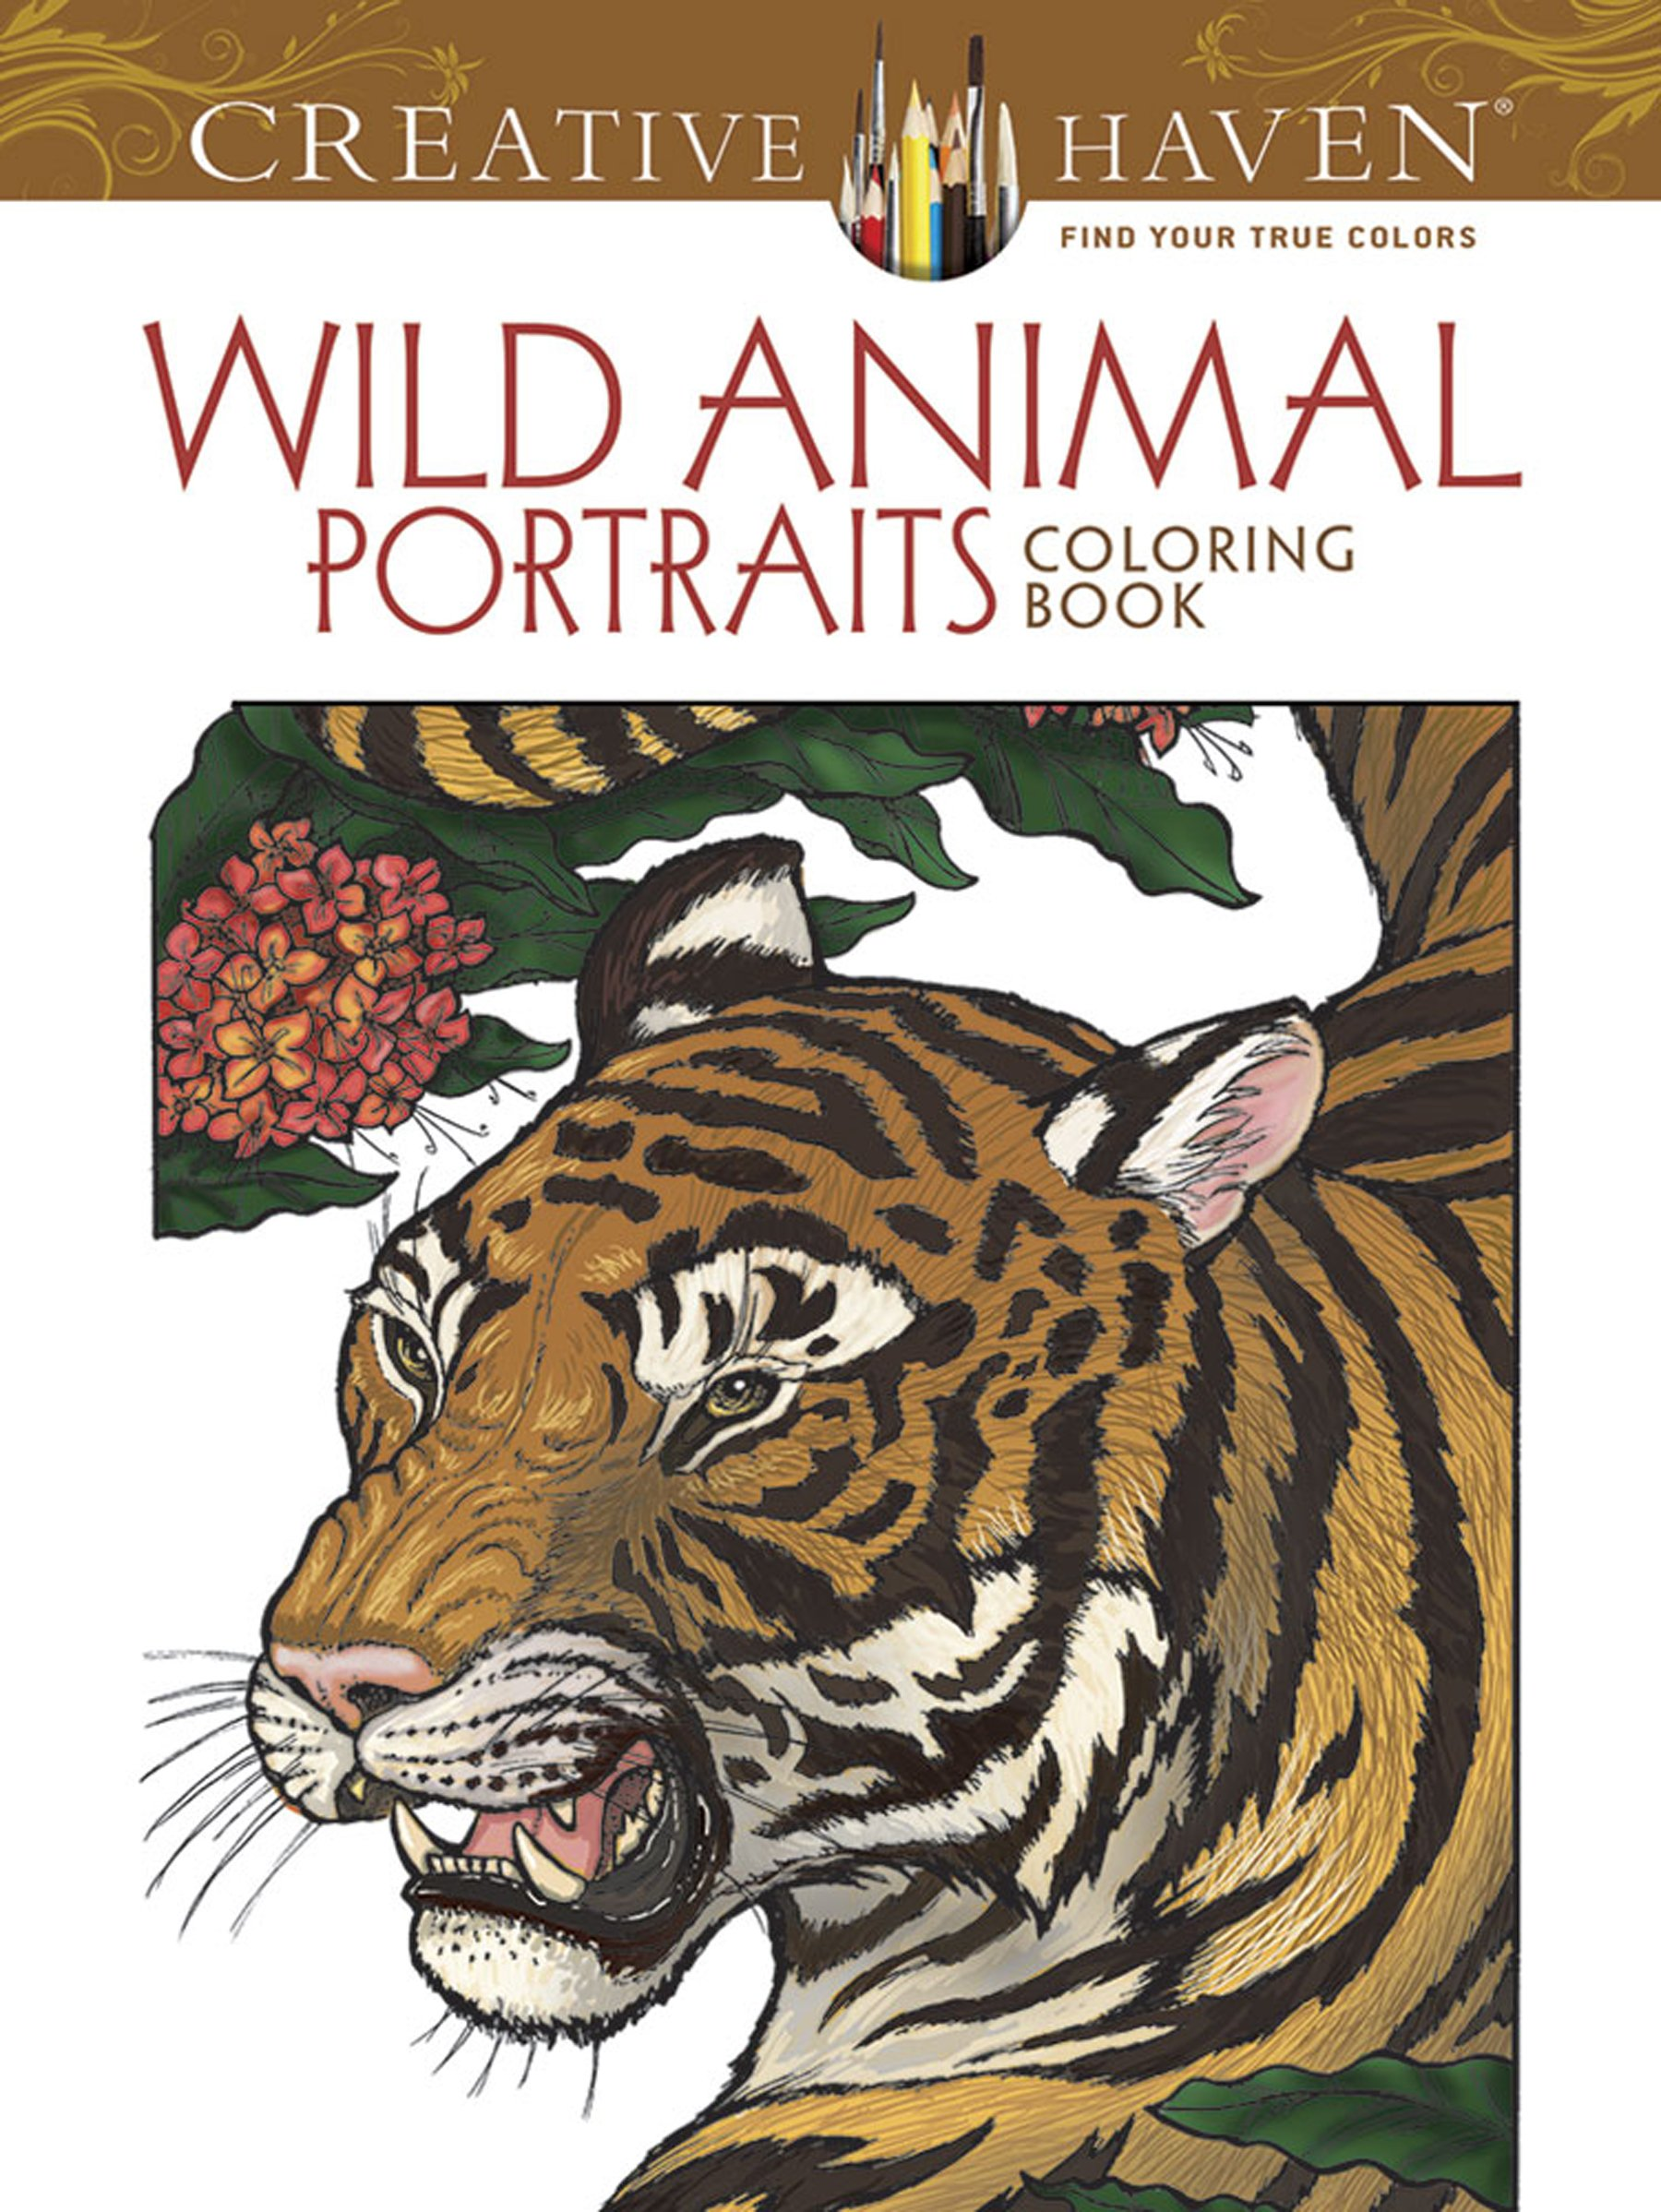 Creative Haven Wild Animal Portraits Coloring Book (Adult Coloring)